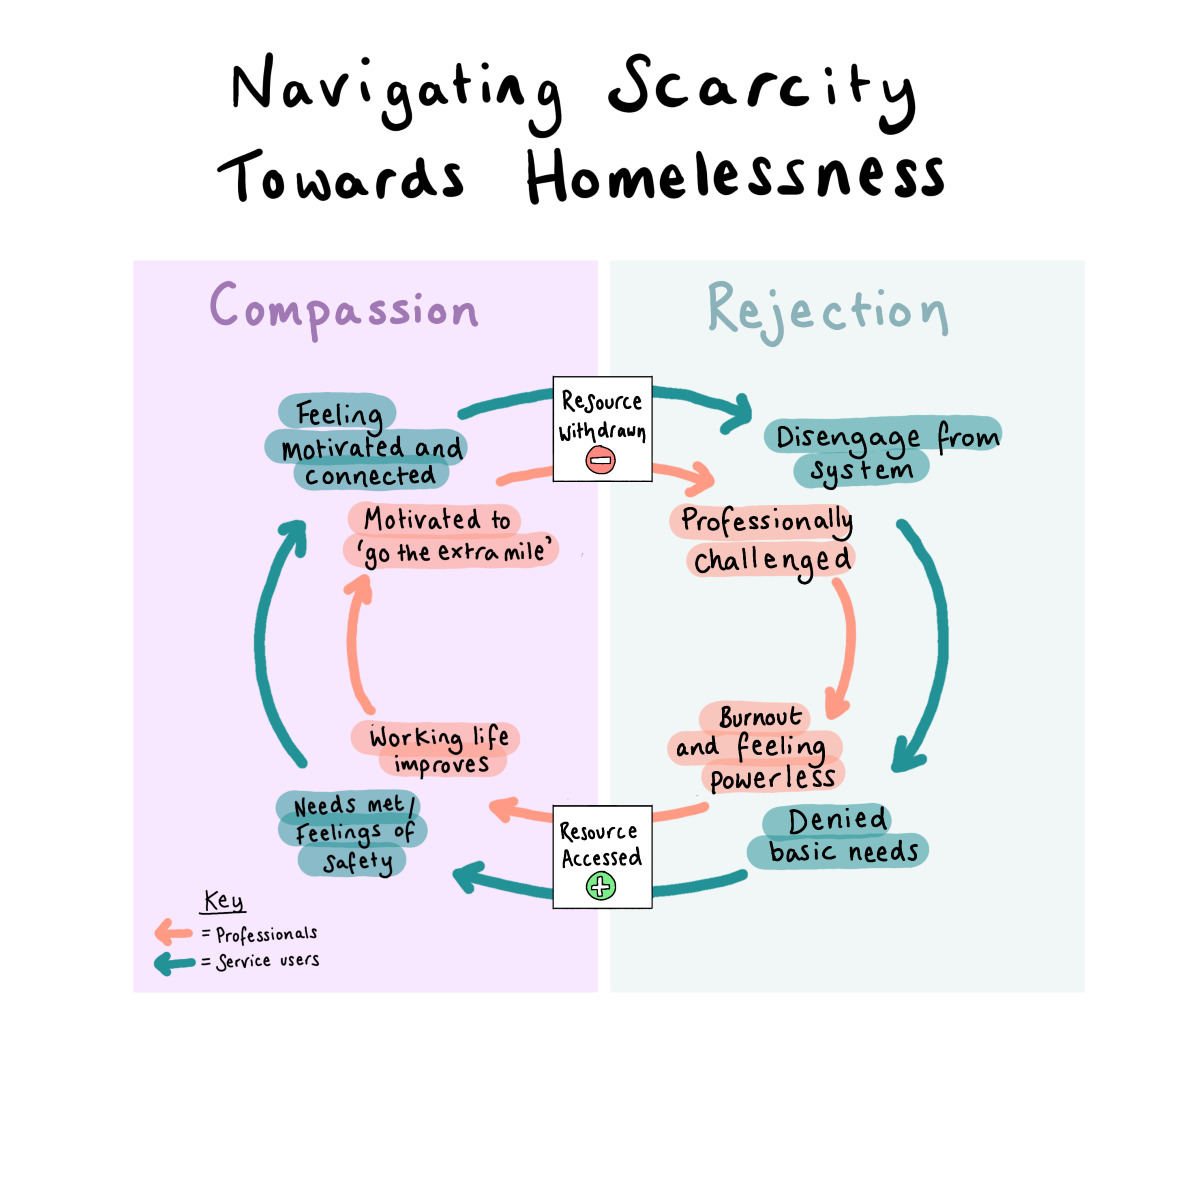 Navigating Homeless Services